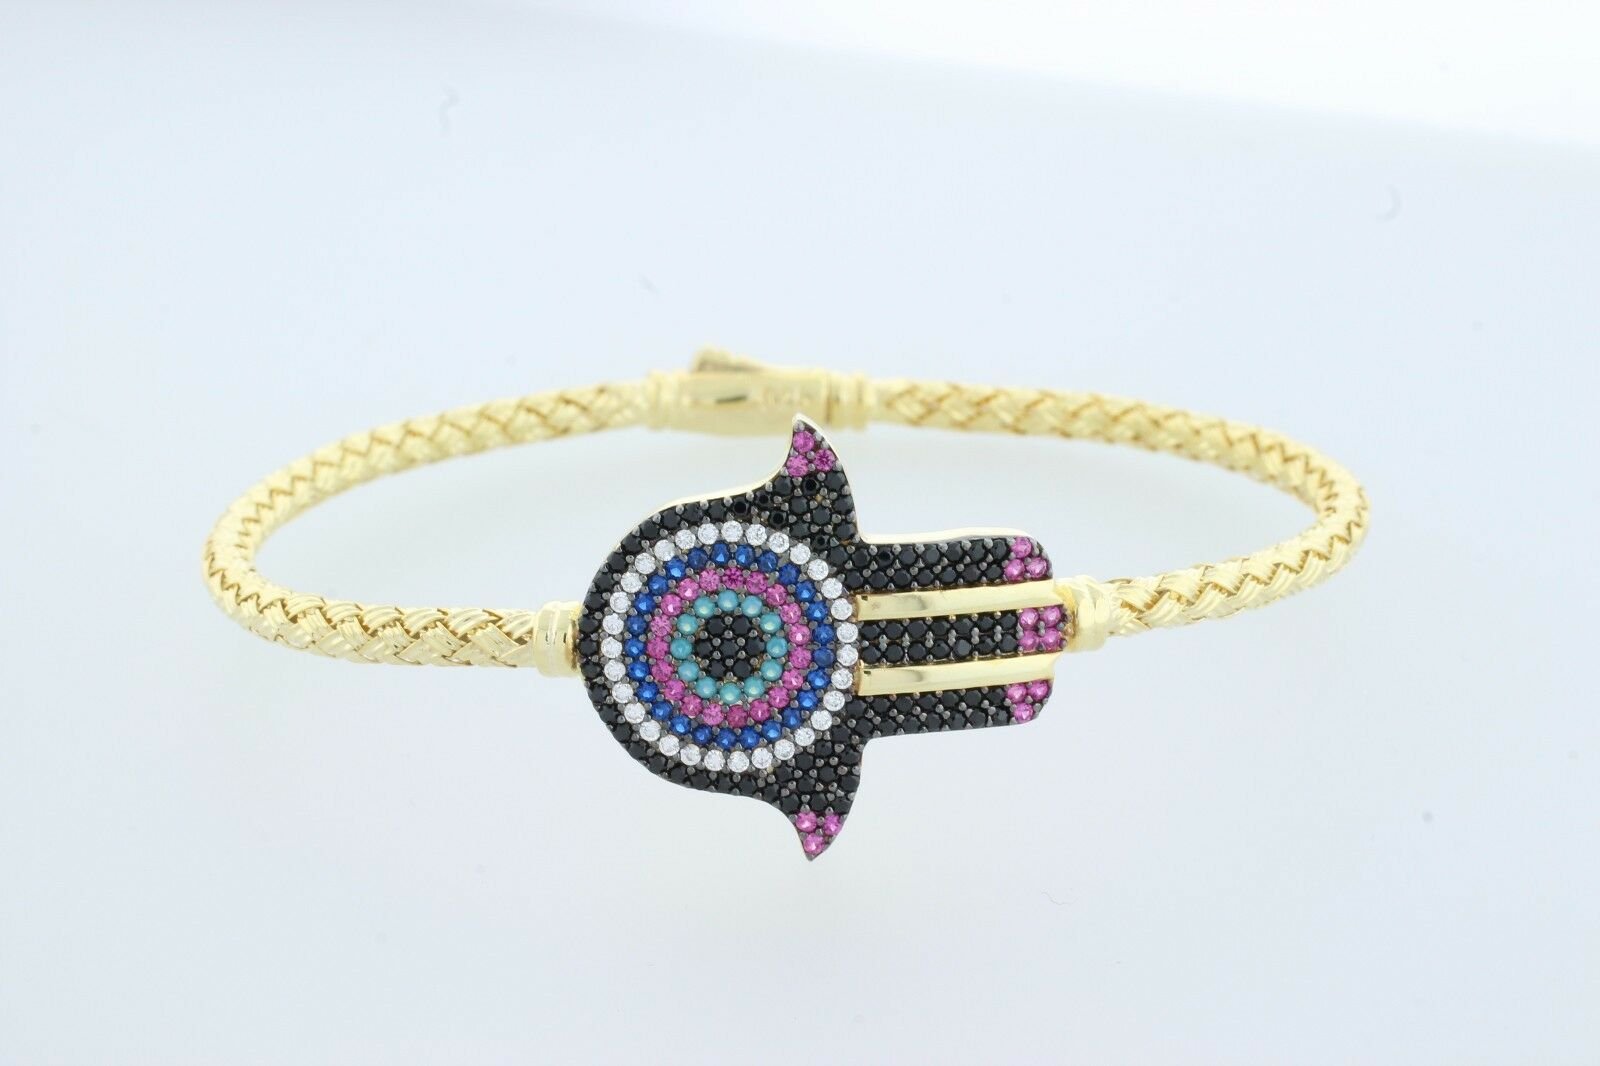 EVIL EYE HAMSA COLOR BRACELET PLATED WITH gold LARGE EVIL EYE HAND RAINBOW